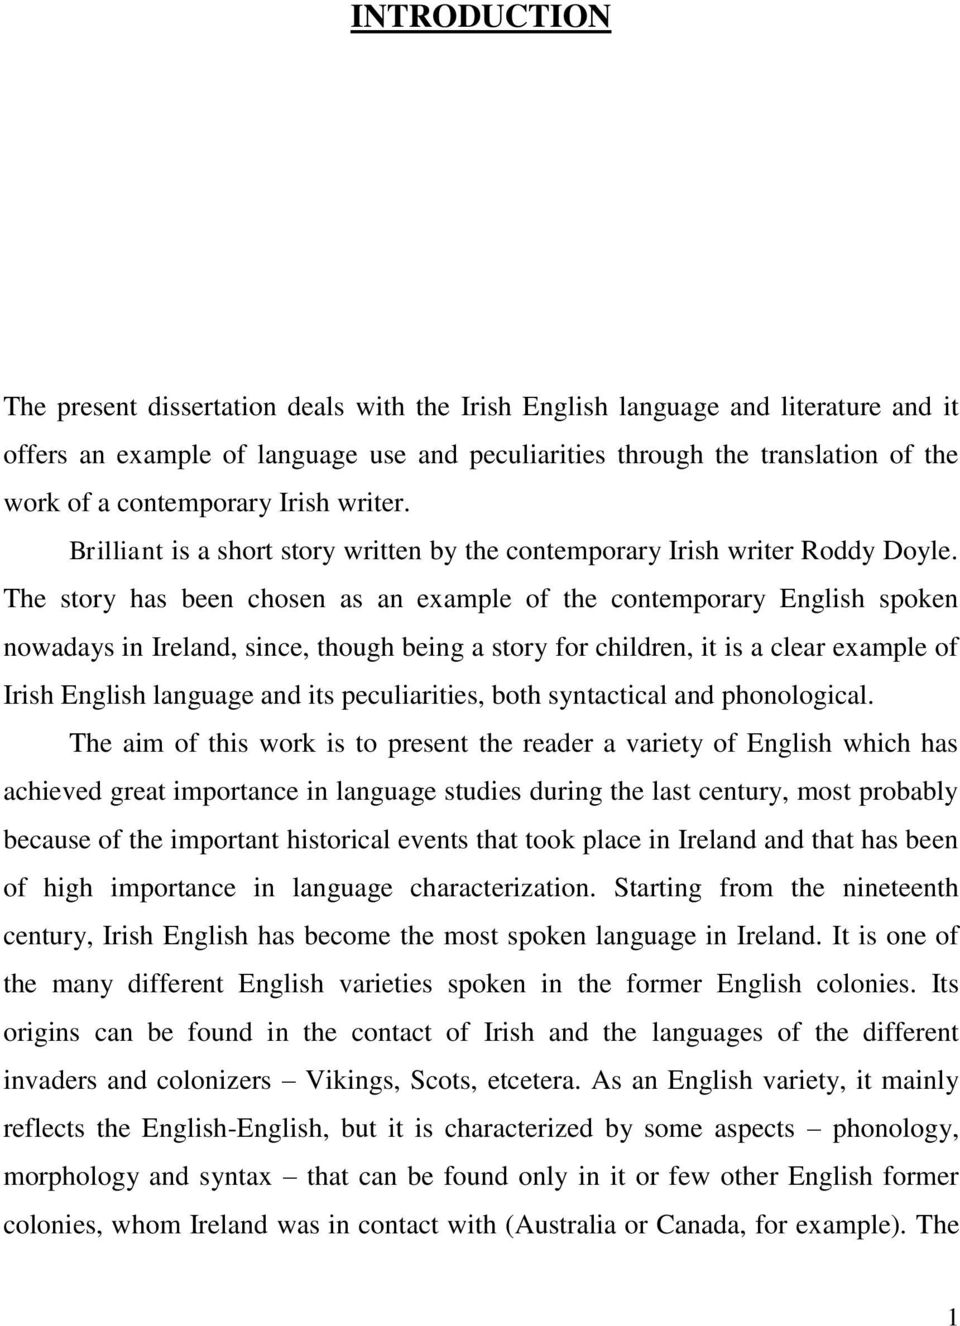 The story has been chosen as an example of the contemporary English spoken nowadays in Ireland, since, though being a story for children, it is a clear example of Irish English language and its